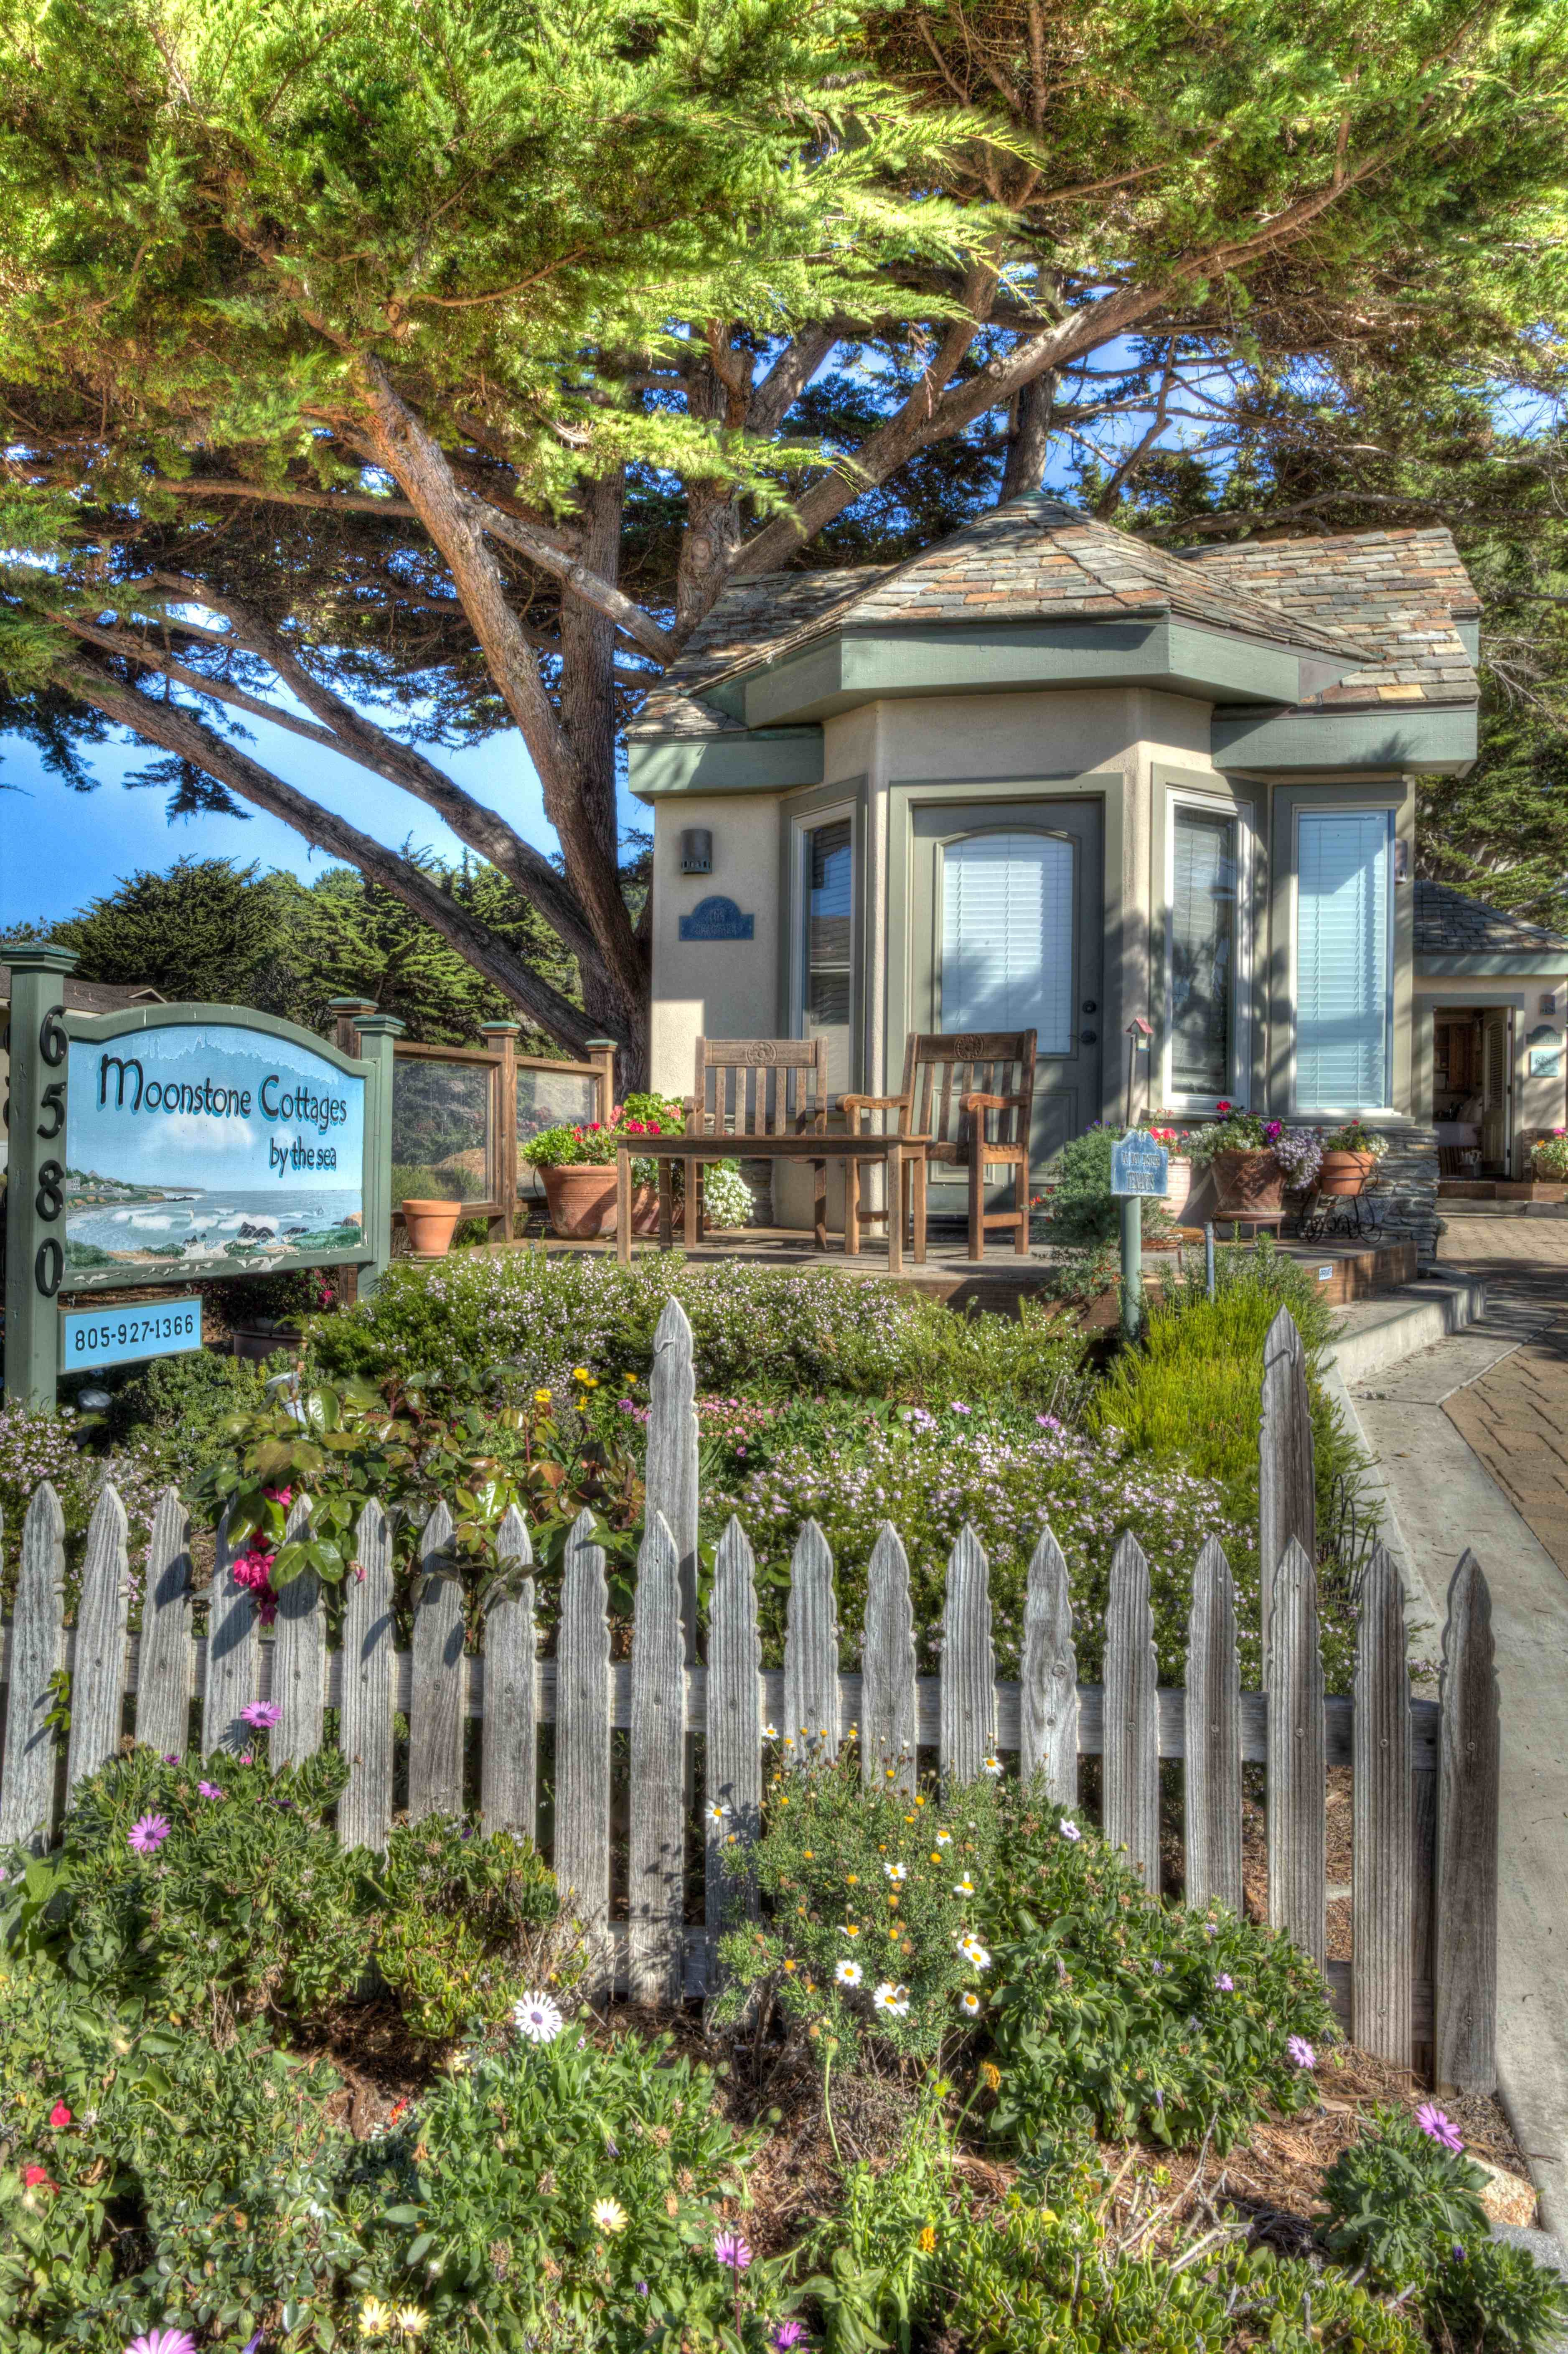 Moonstone Cottages In Cambria Ca Combine The Privacy Of Your Own Personal Cottage With All